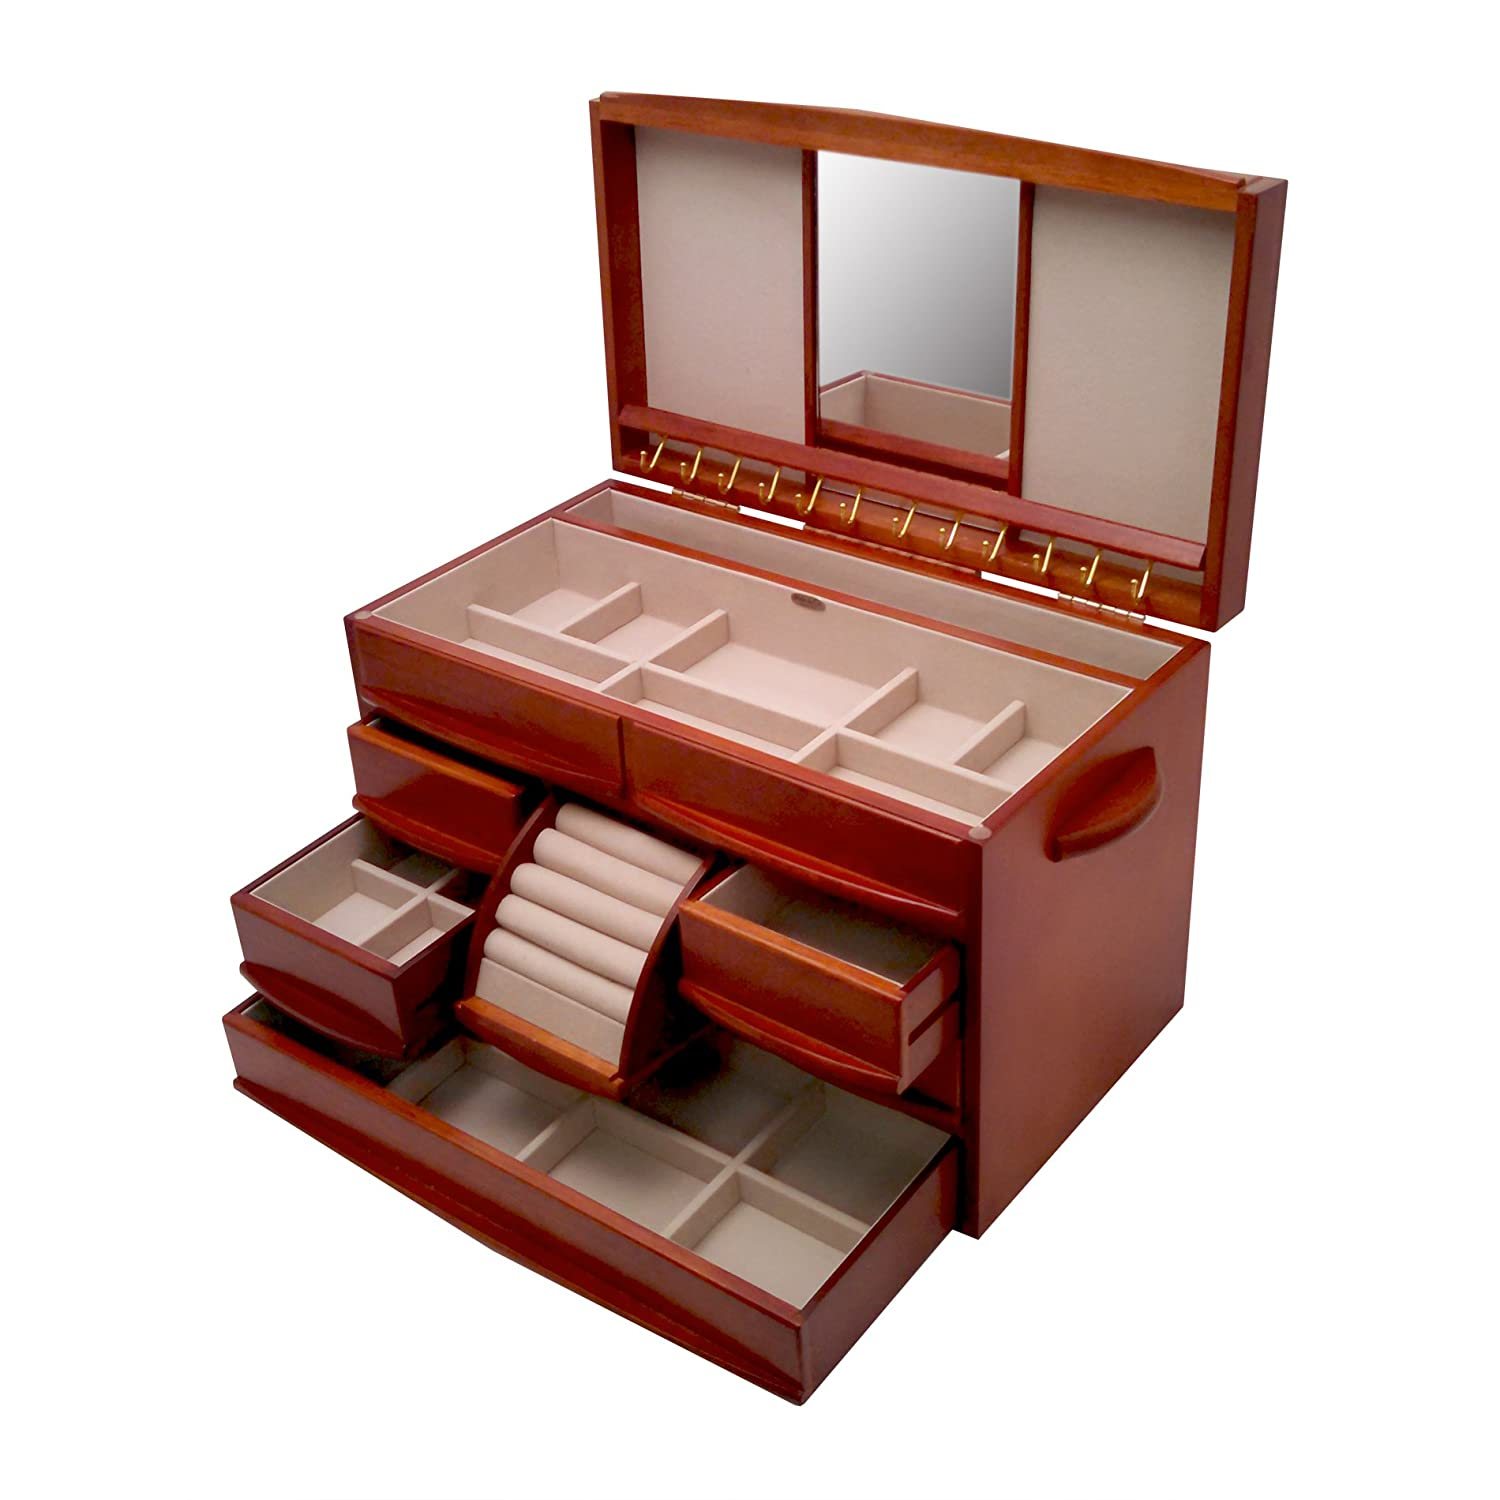 Jewelry Boxes for Women | Anais Faves: anaisfaves.com/jewelry-boxes-for-women